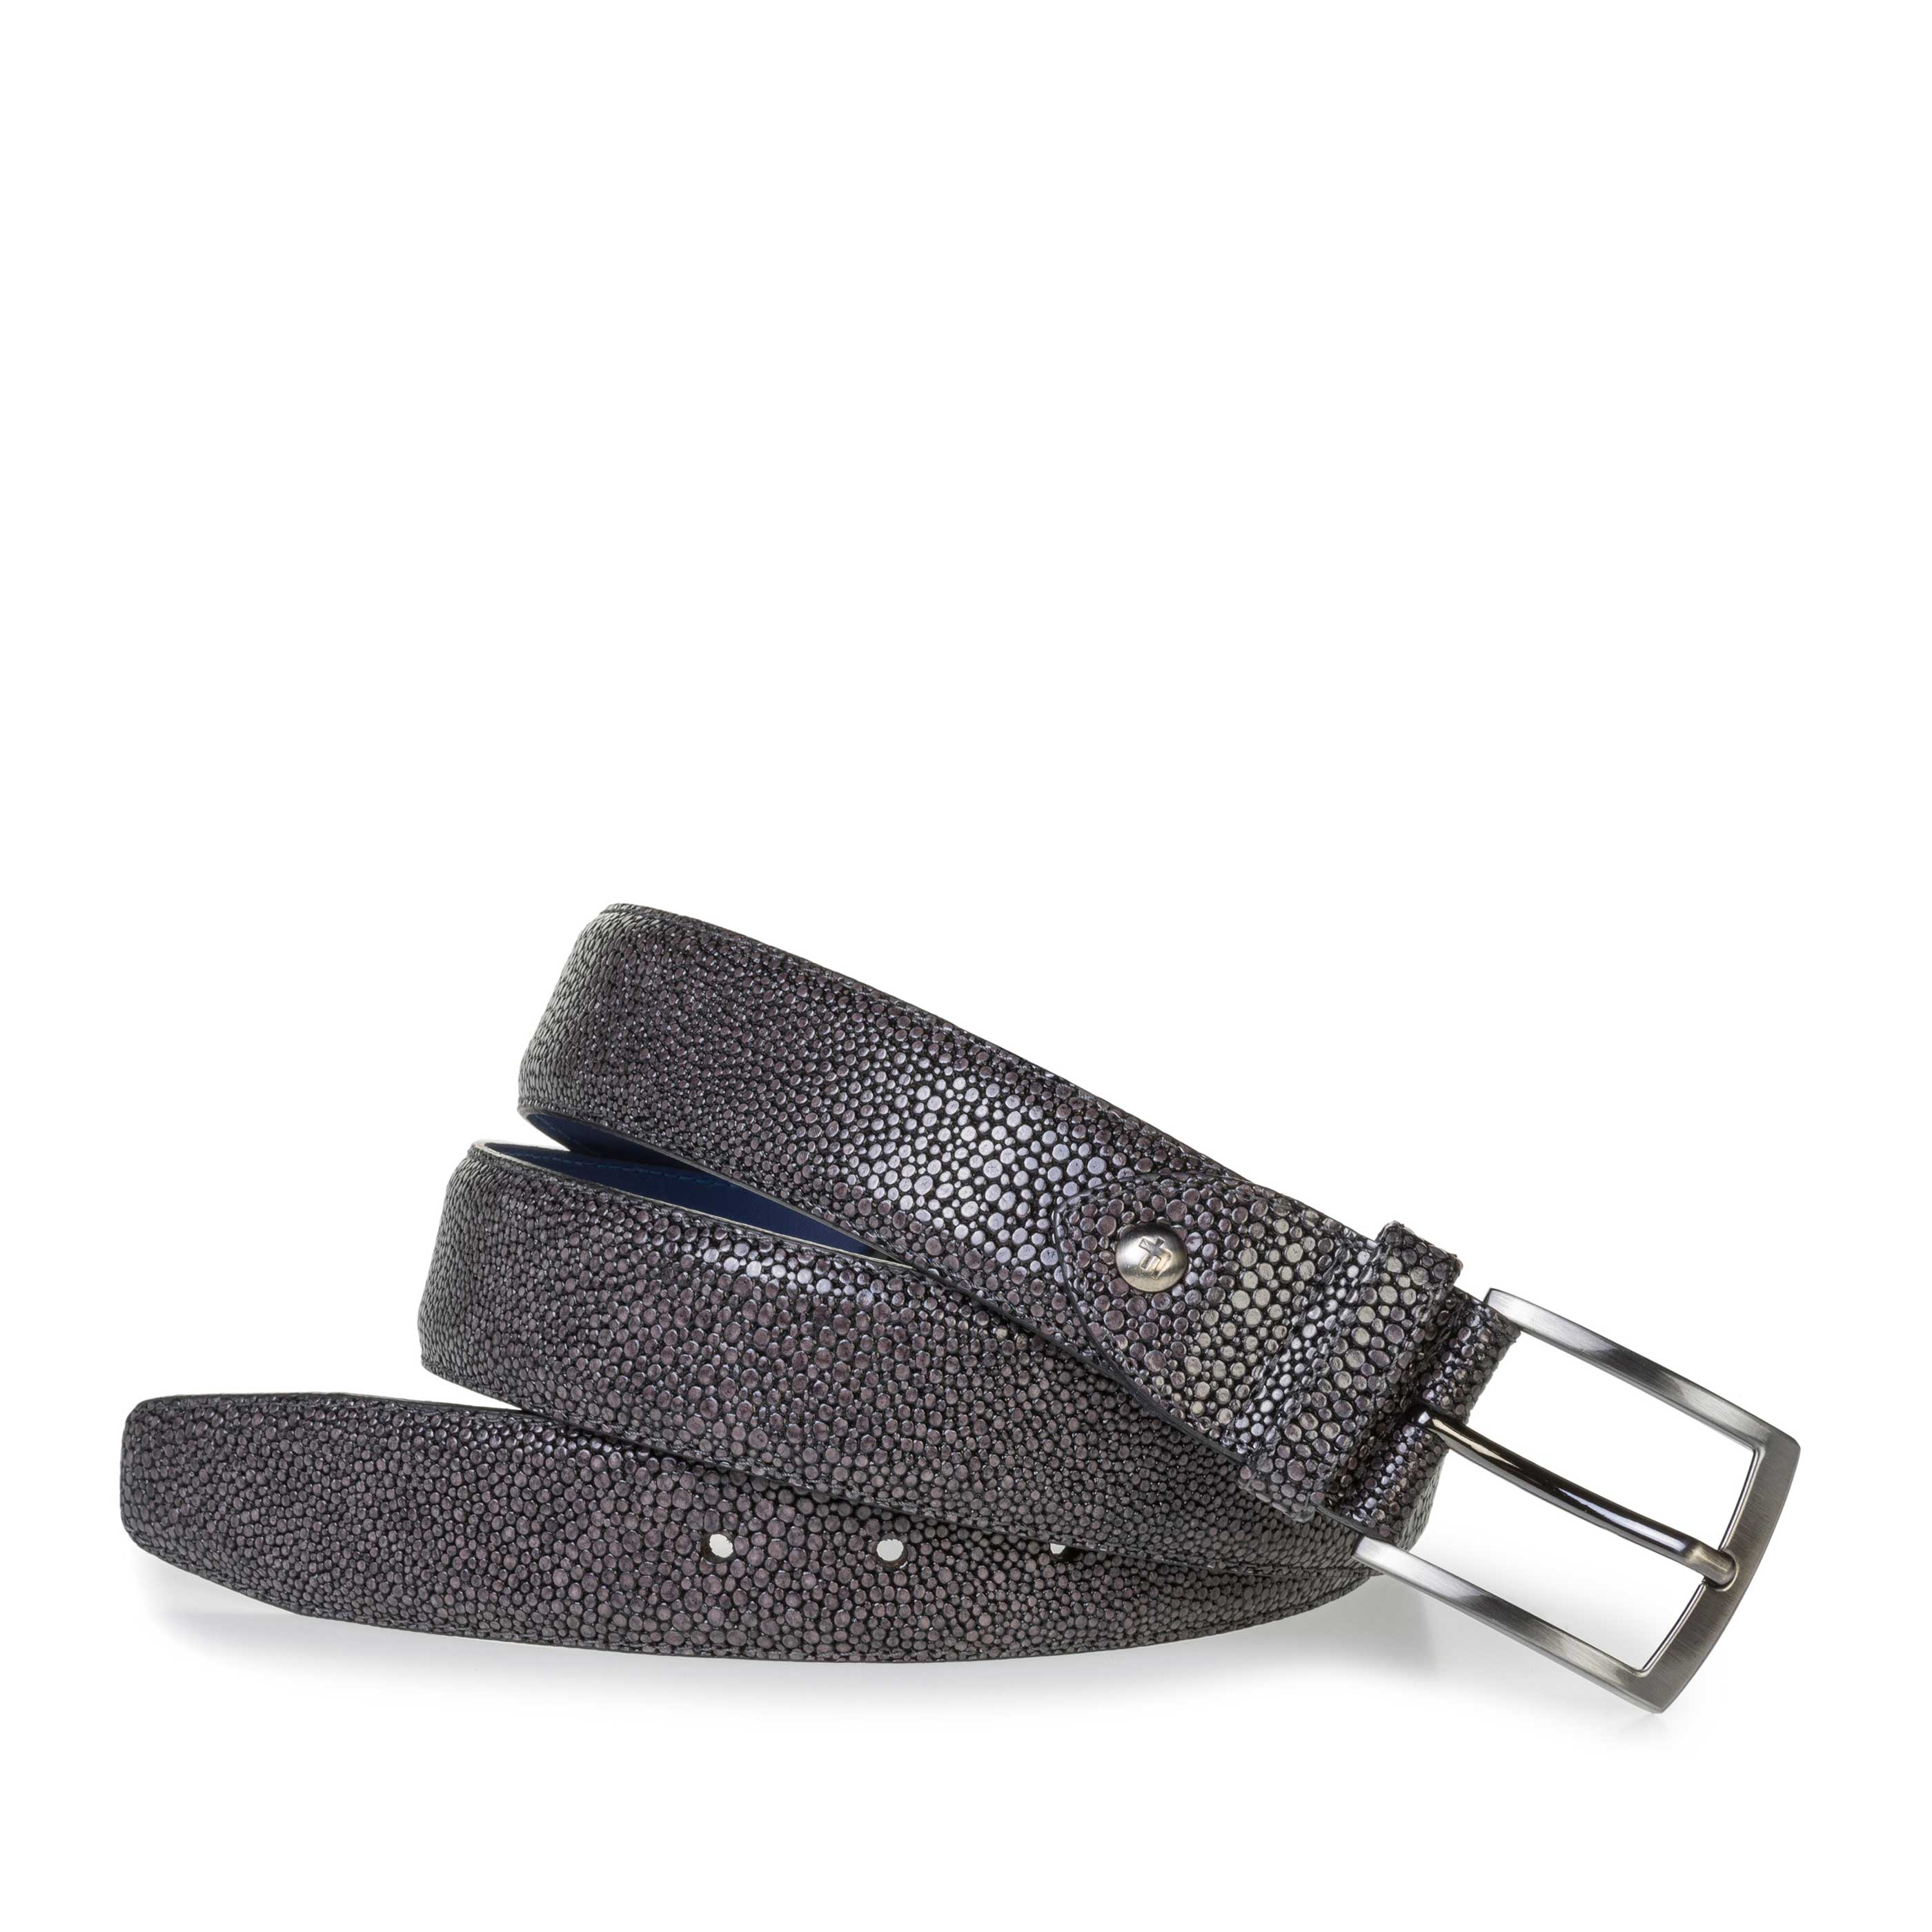 75200/92 - Grey leather belt with metallic print